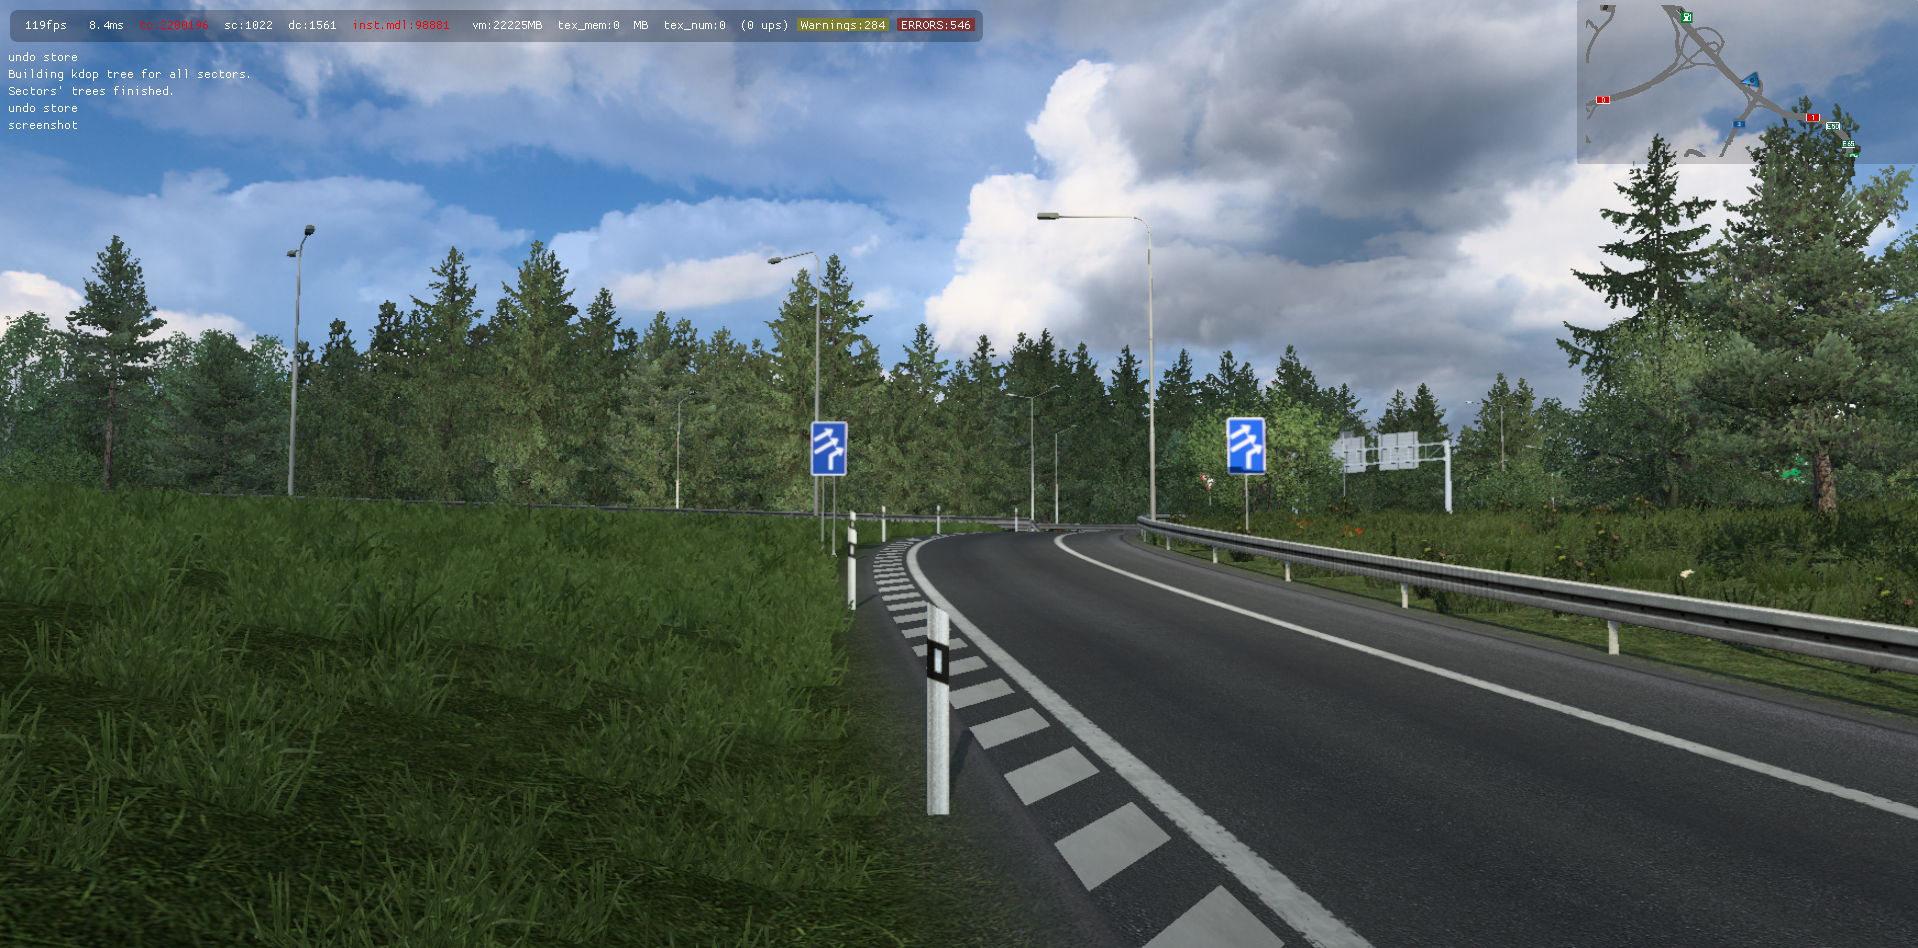 ets2_20210725_233800_00.png